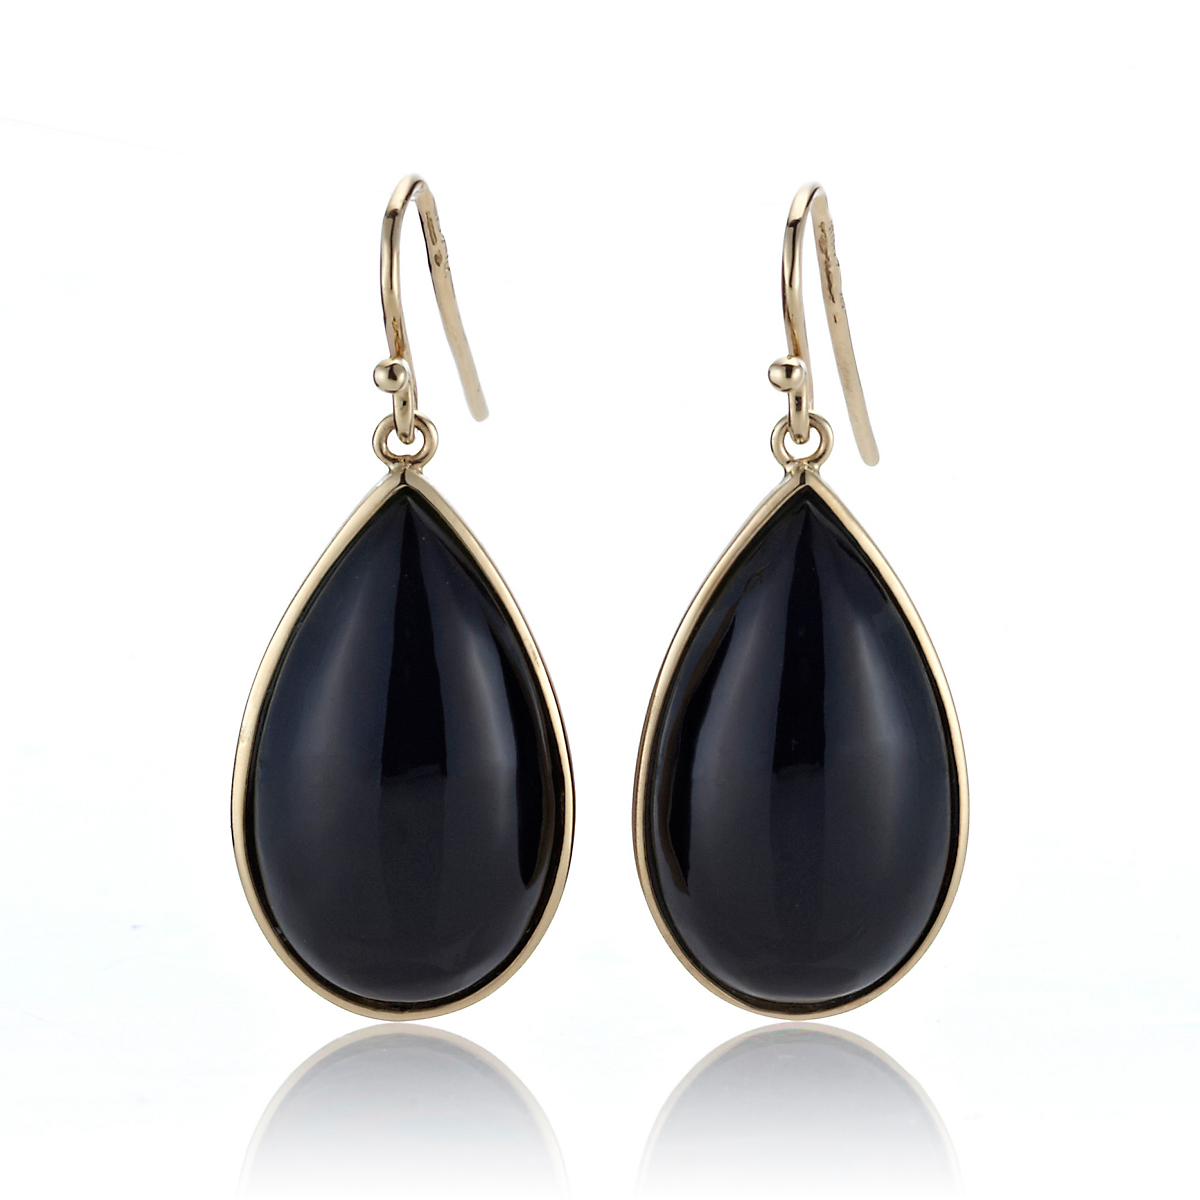 Gump's Black Nephrite Jade Cabochon Teardrop Earrings